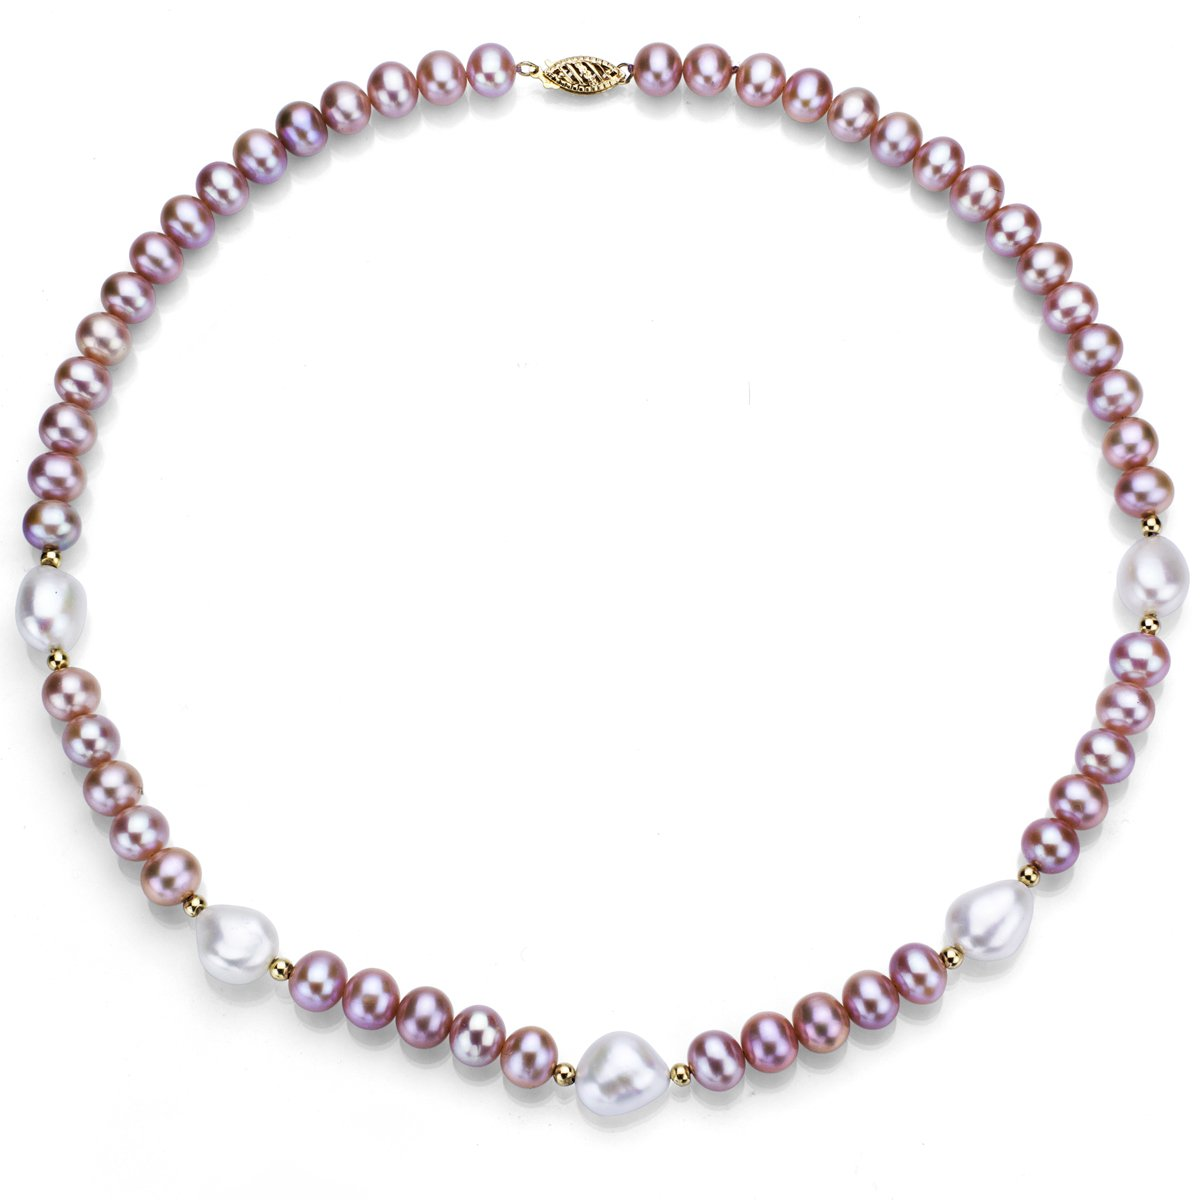 14k Yellow Gold 10-10.5mm White and 7-7.5mm Pink Freshwater Cultured Pearl Necklace 18 18 La Regis Jewelry ND793-5-99